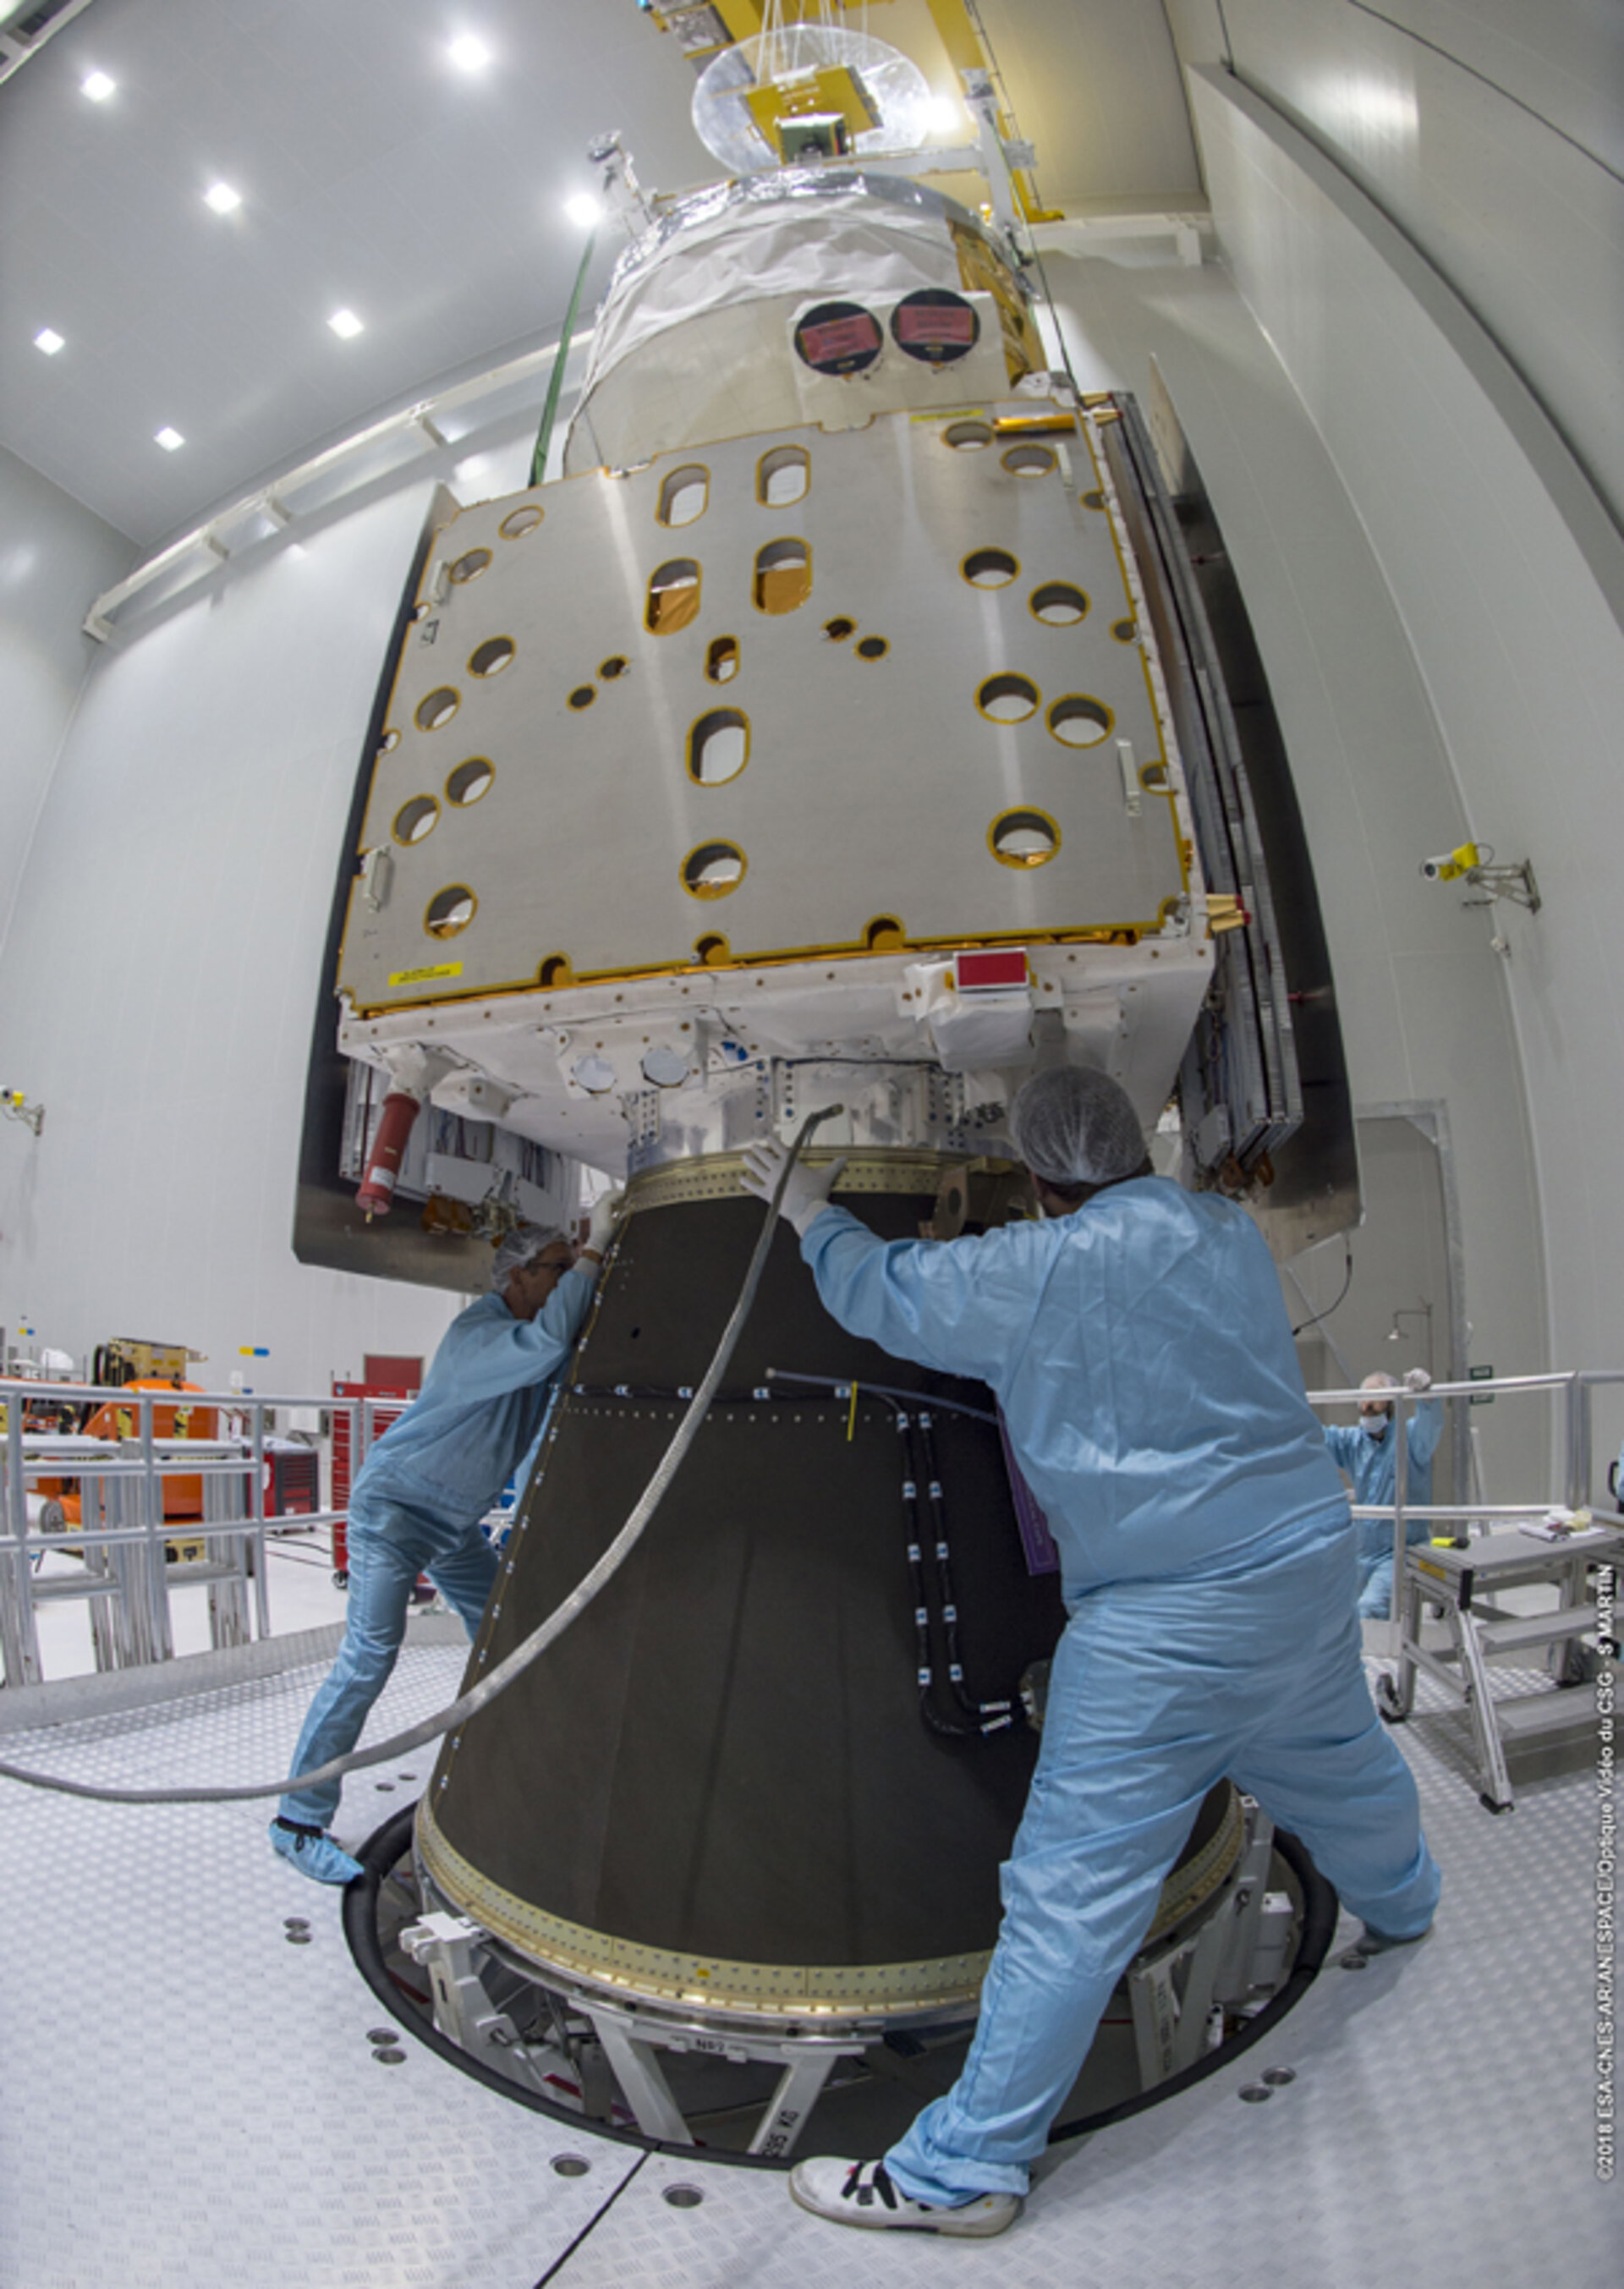 Checking that Aeolus fits onto the rocket cone